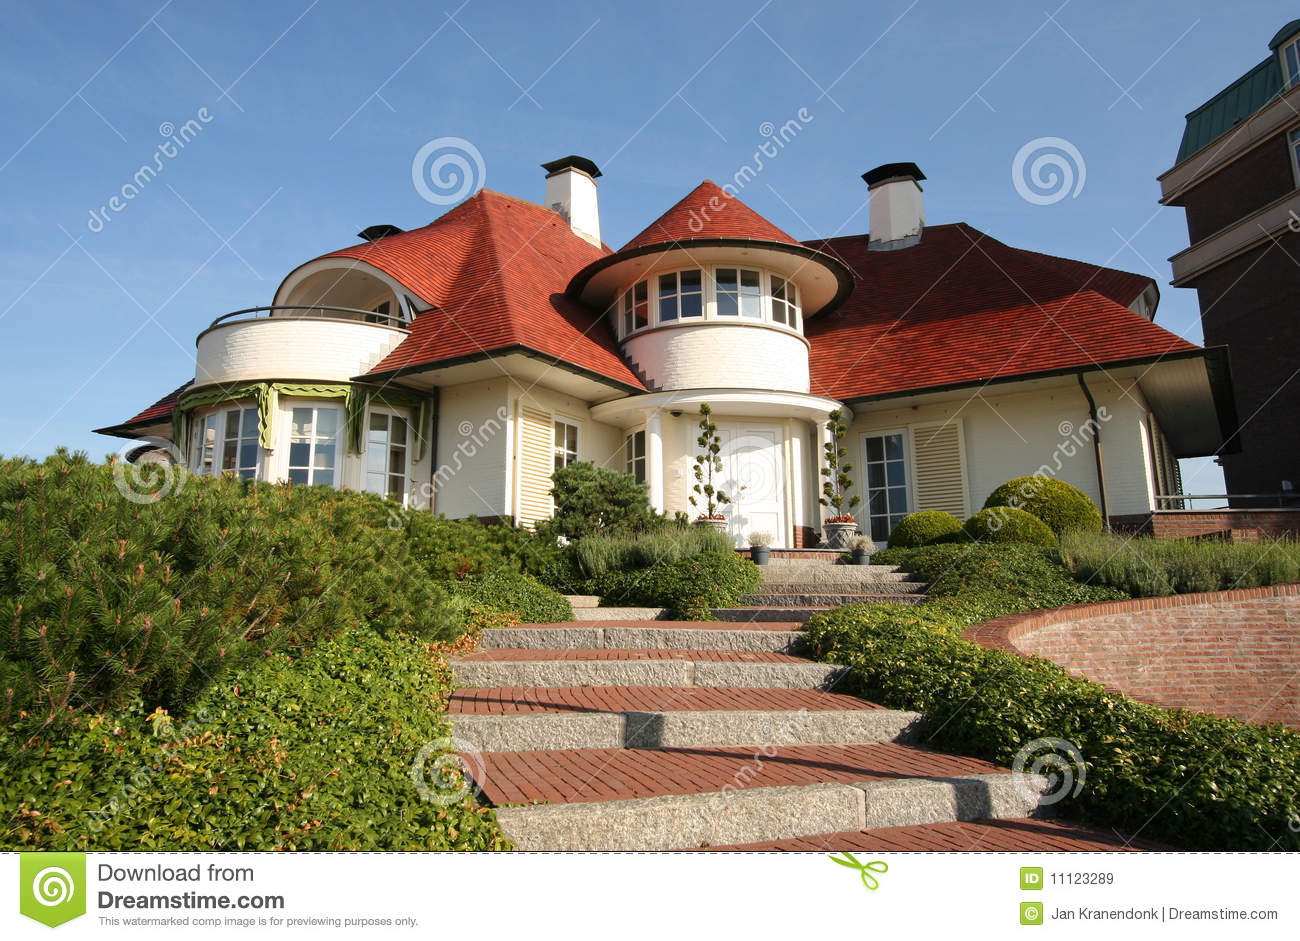 Luxury home royalty free stock images image 11123289 for Free luxury home images